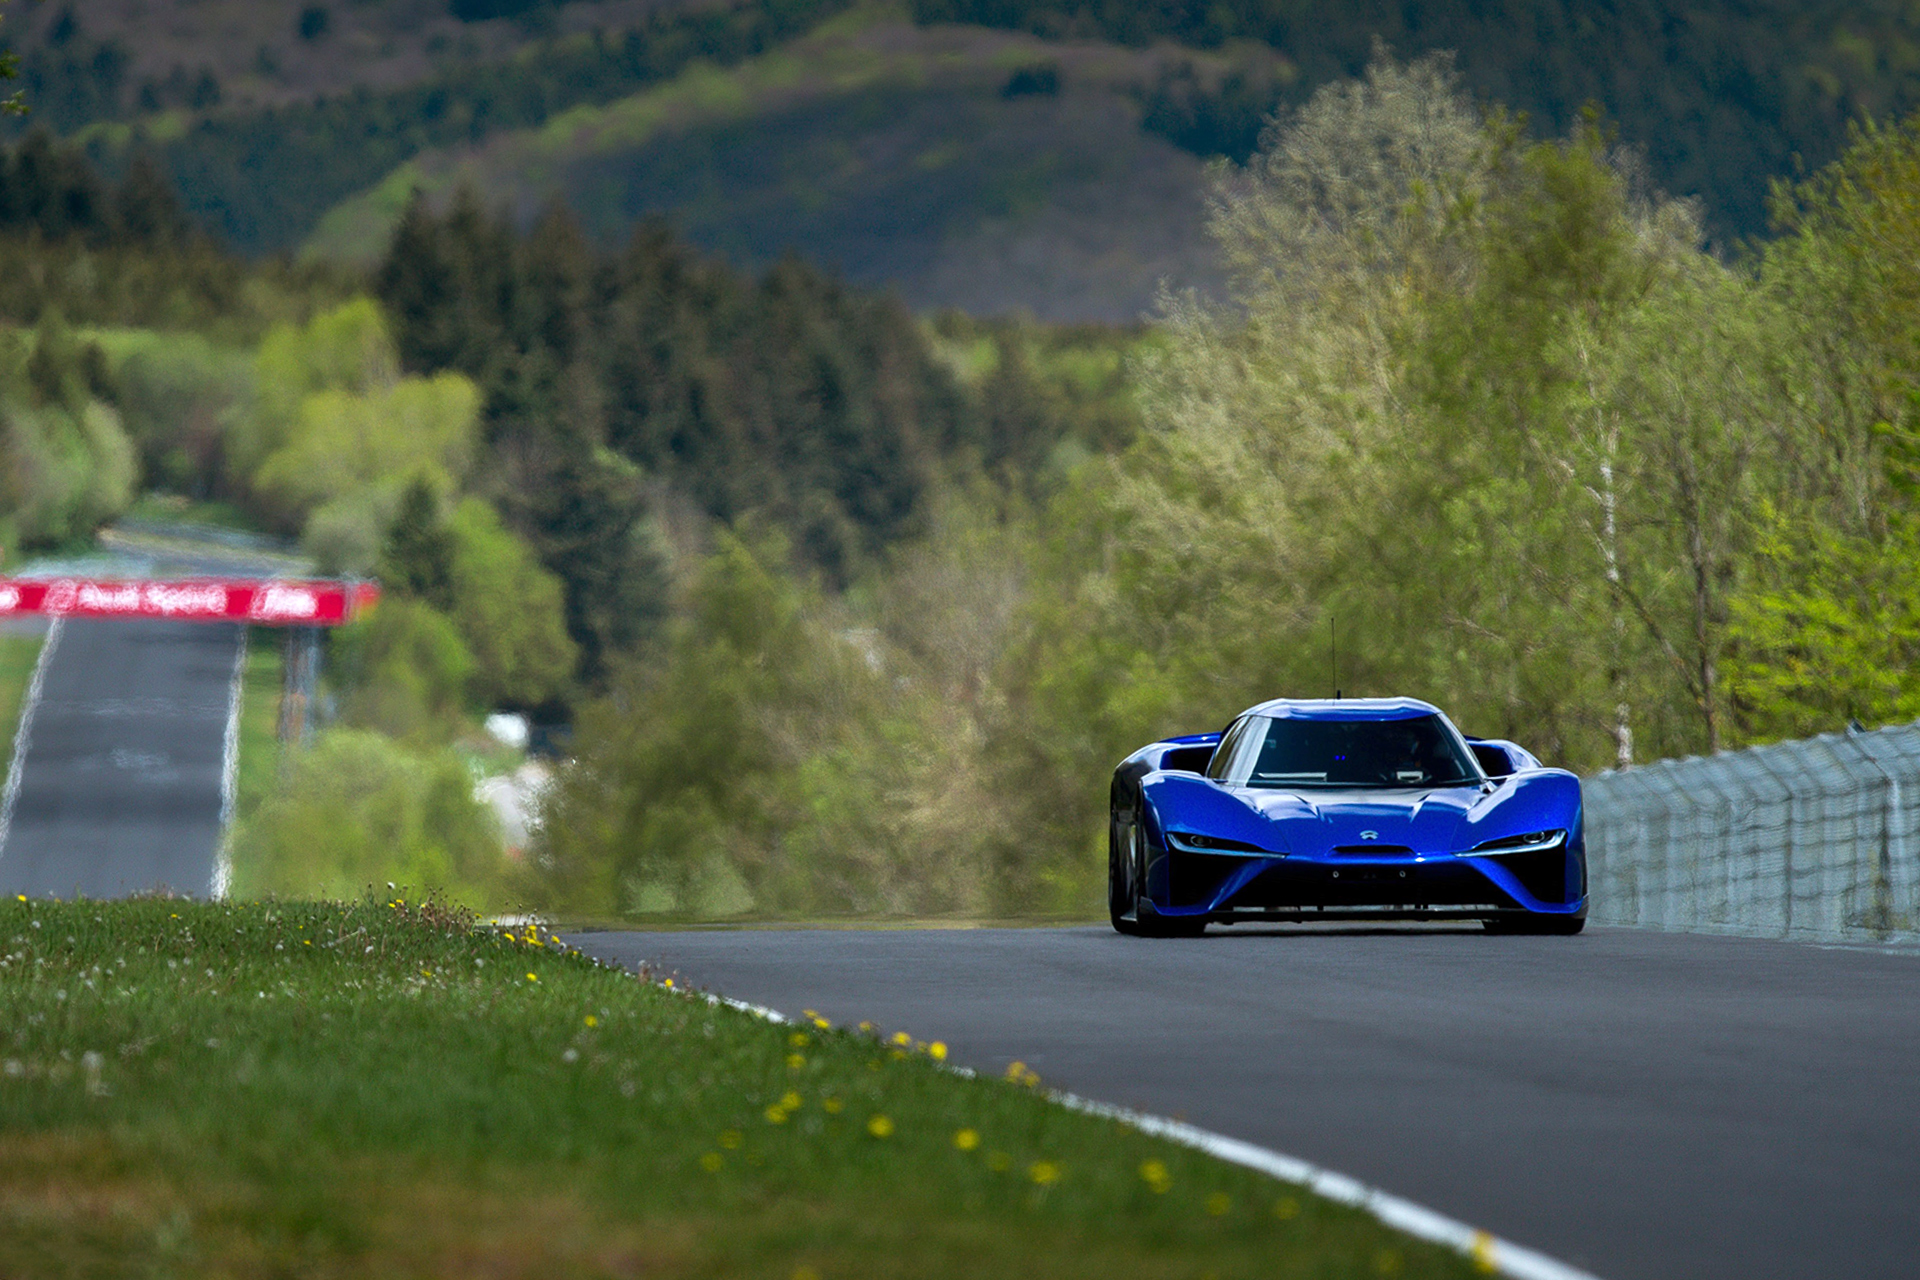 NIO Smashes The Nürburgring EV Lap Record